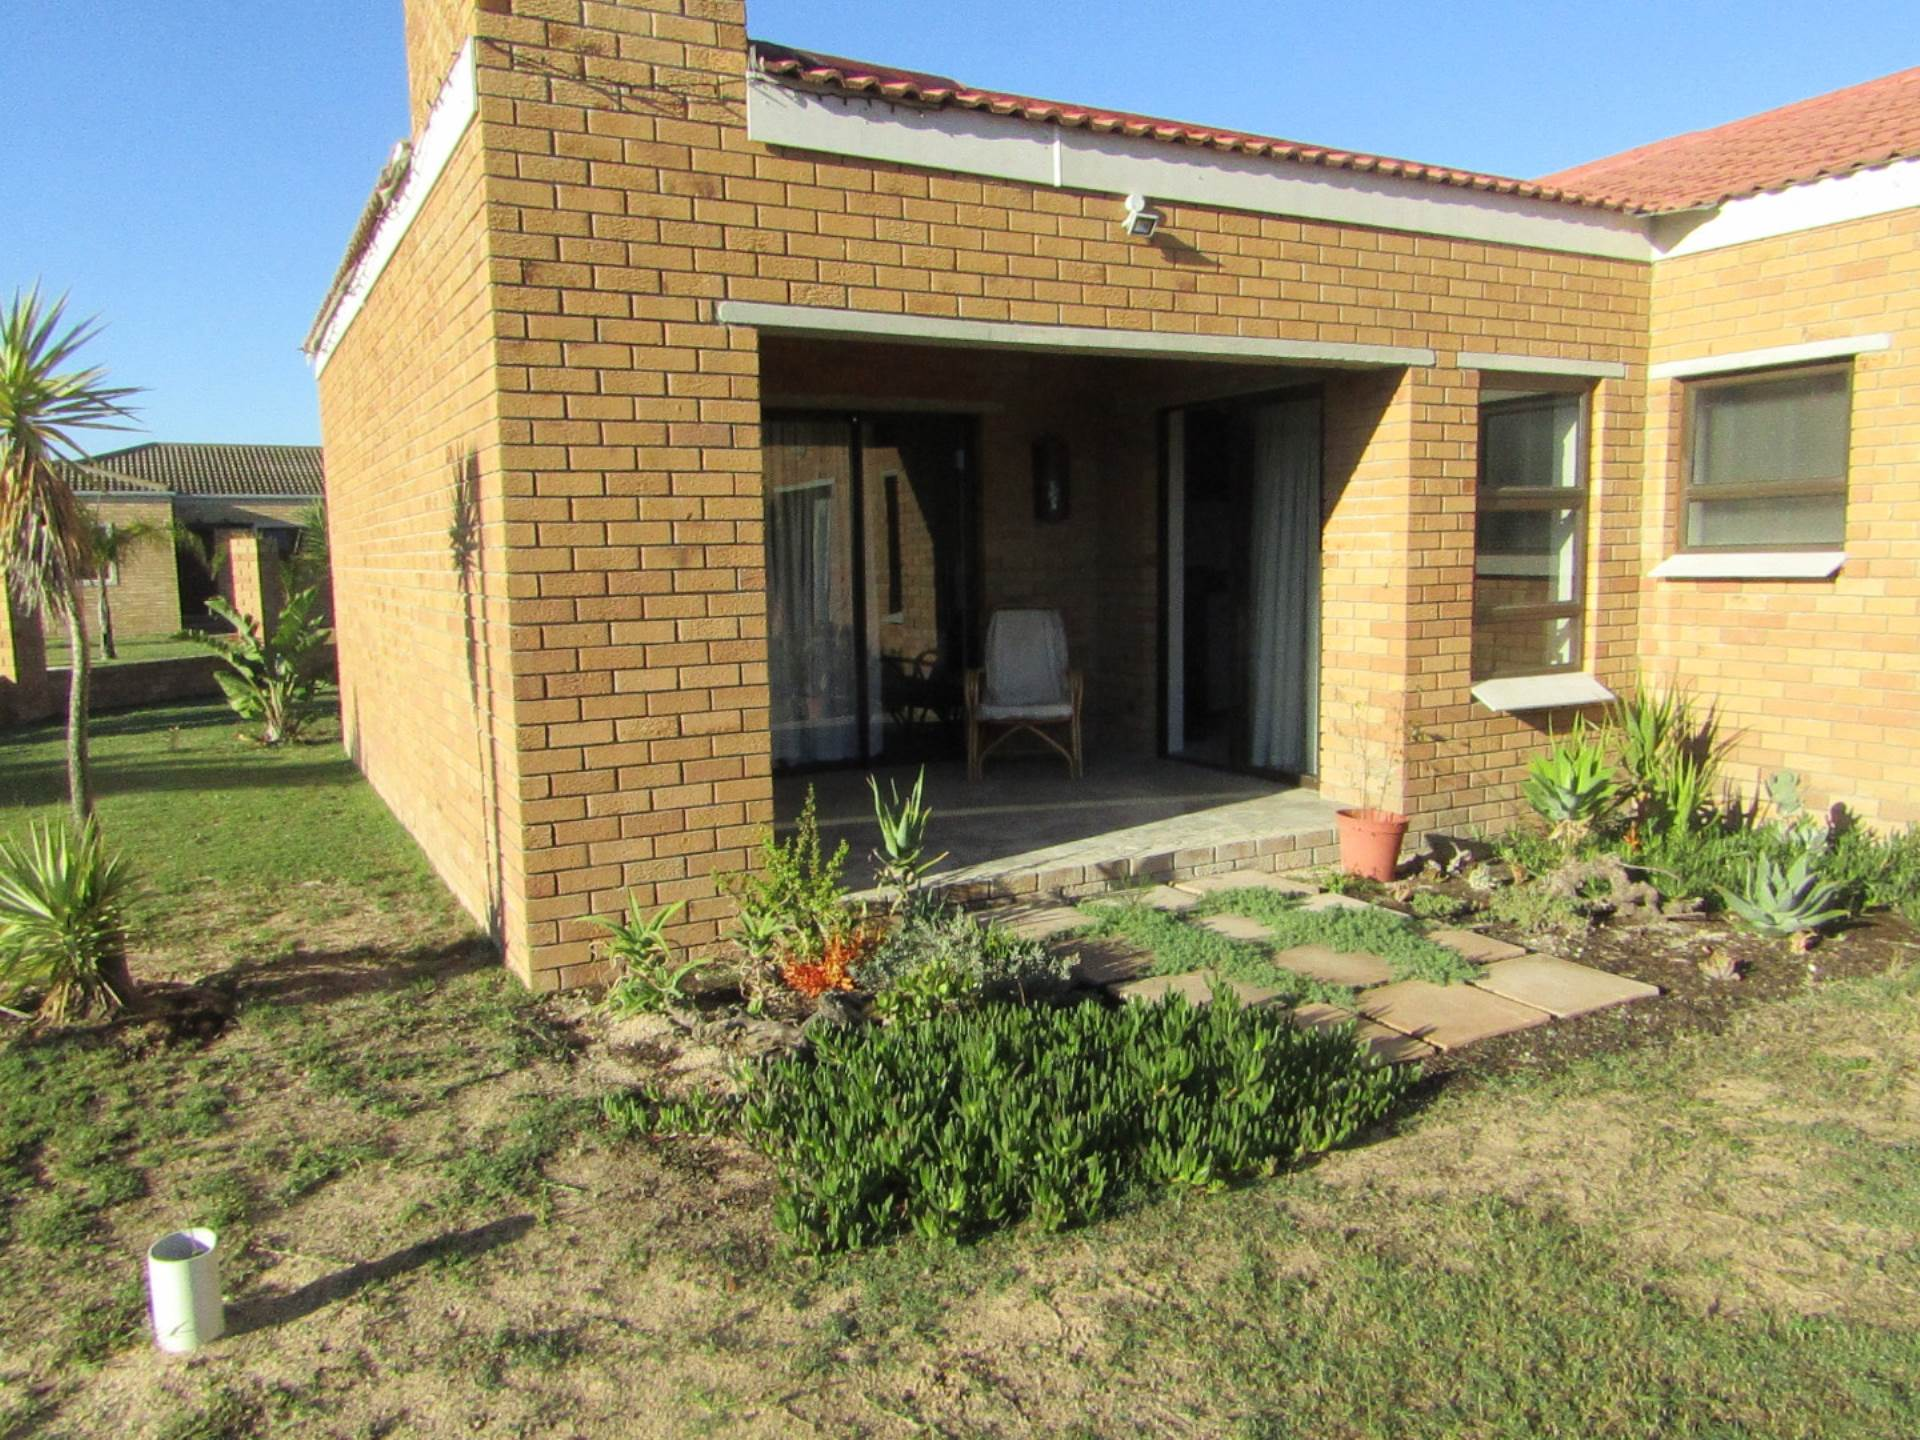 3 BedroomHouse For Sale In Zonnendal